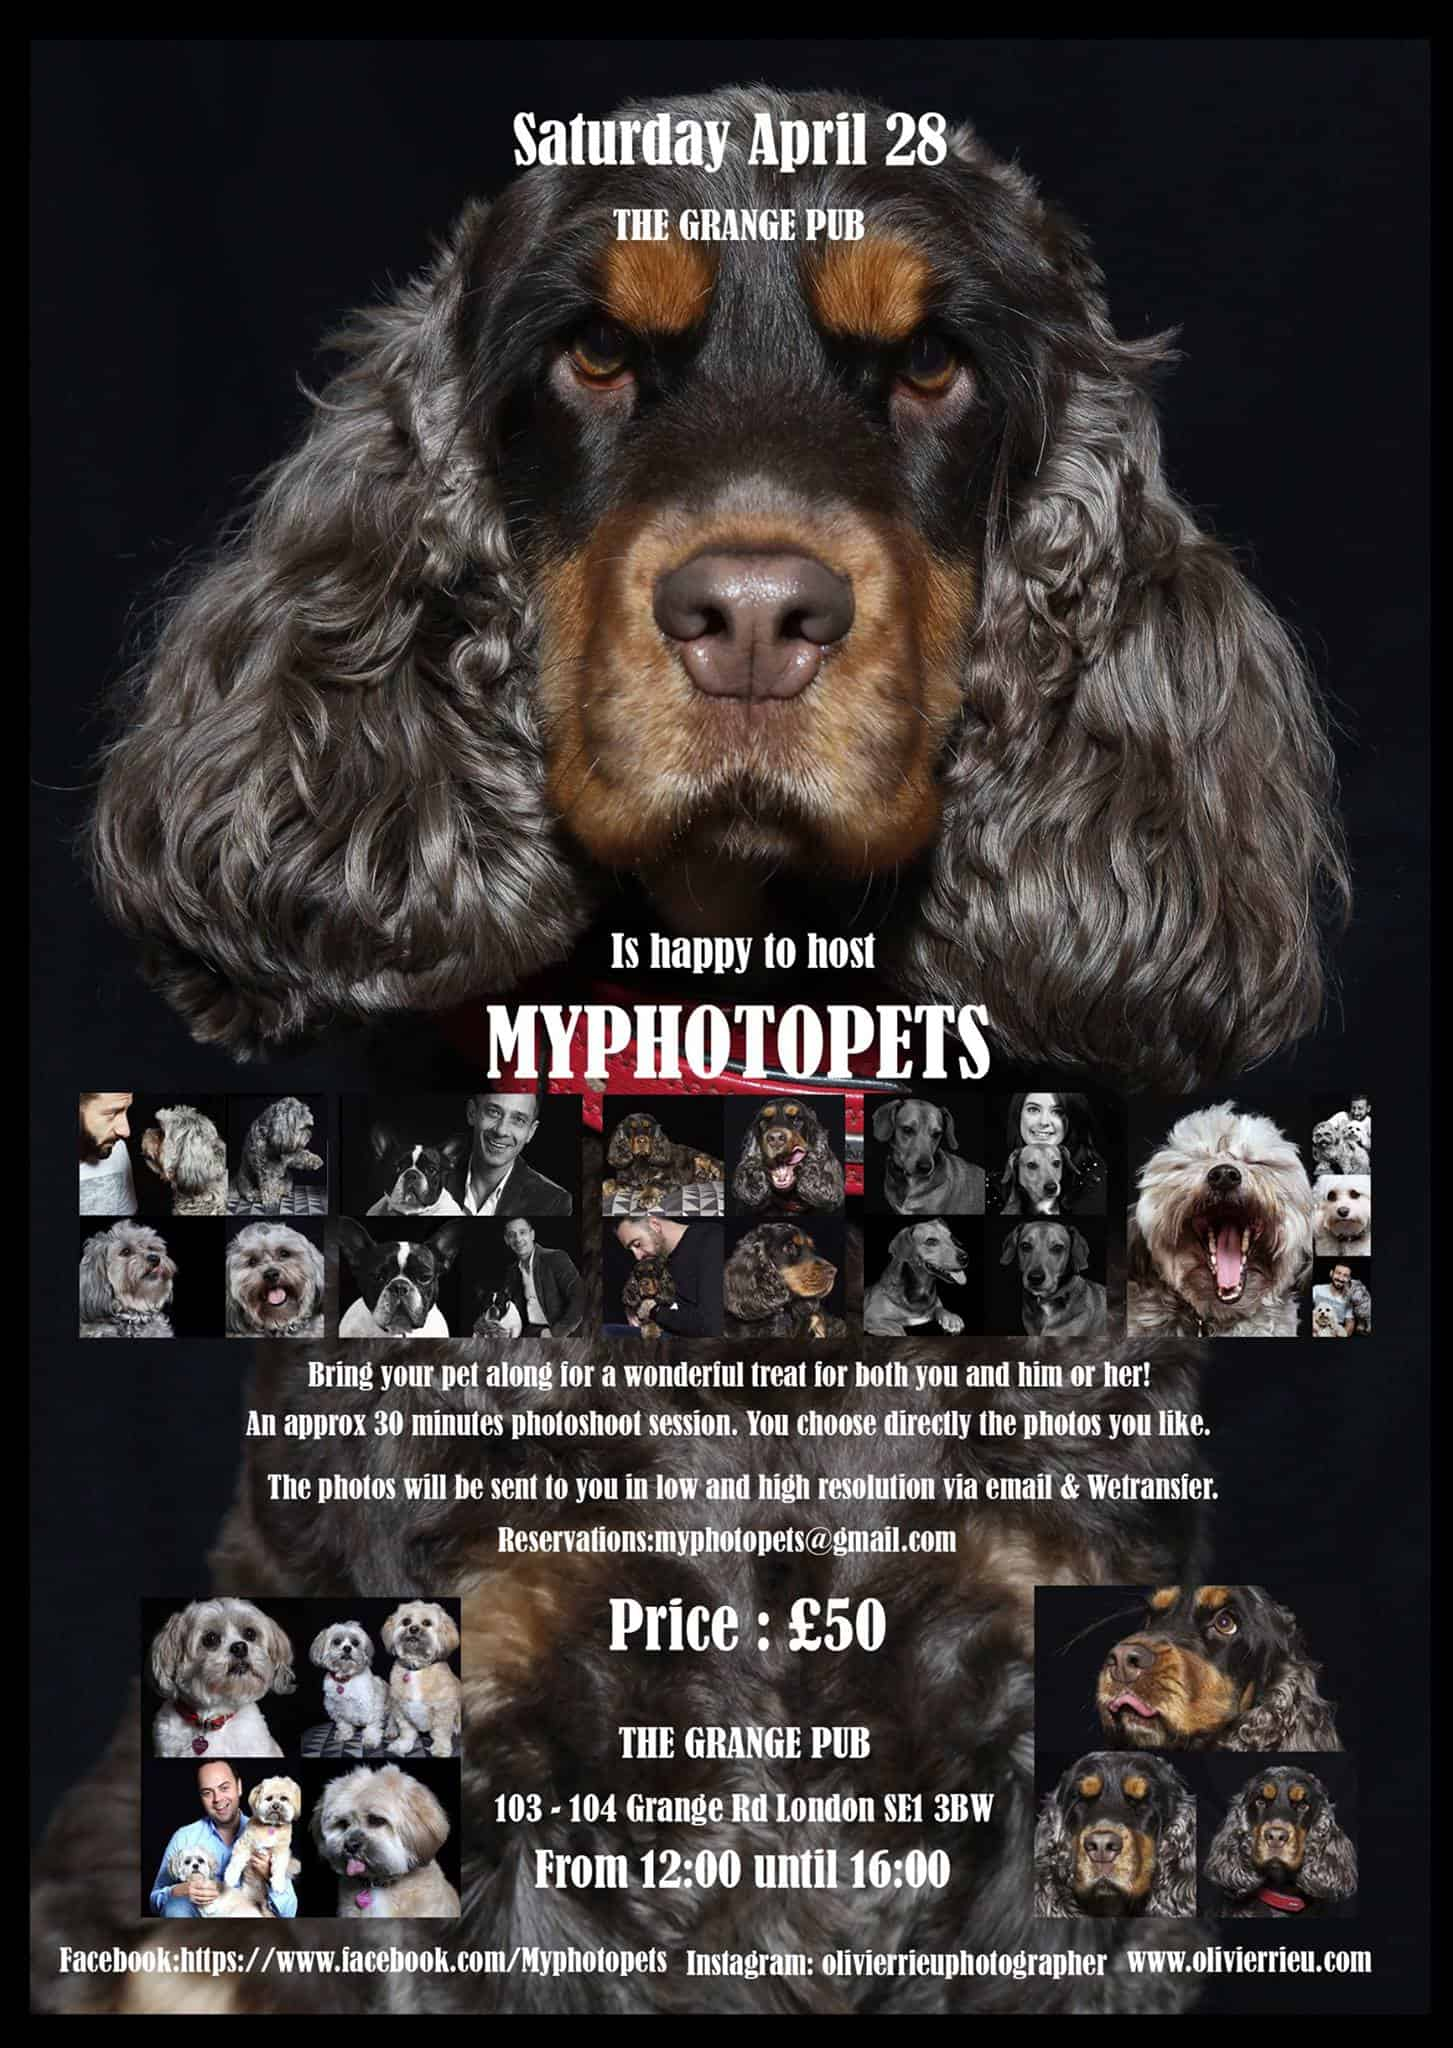 London Dog Events - My PhotoPets Popup Photos